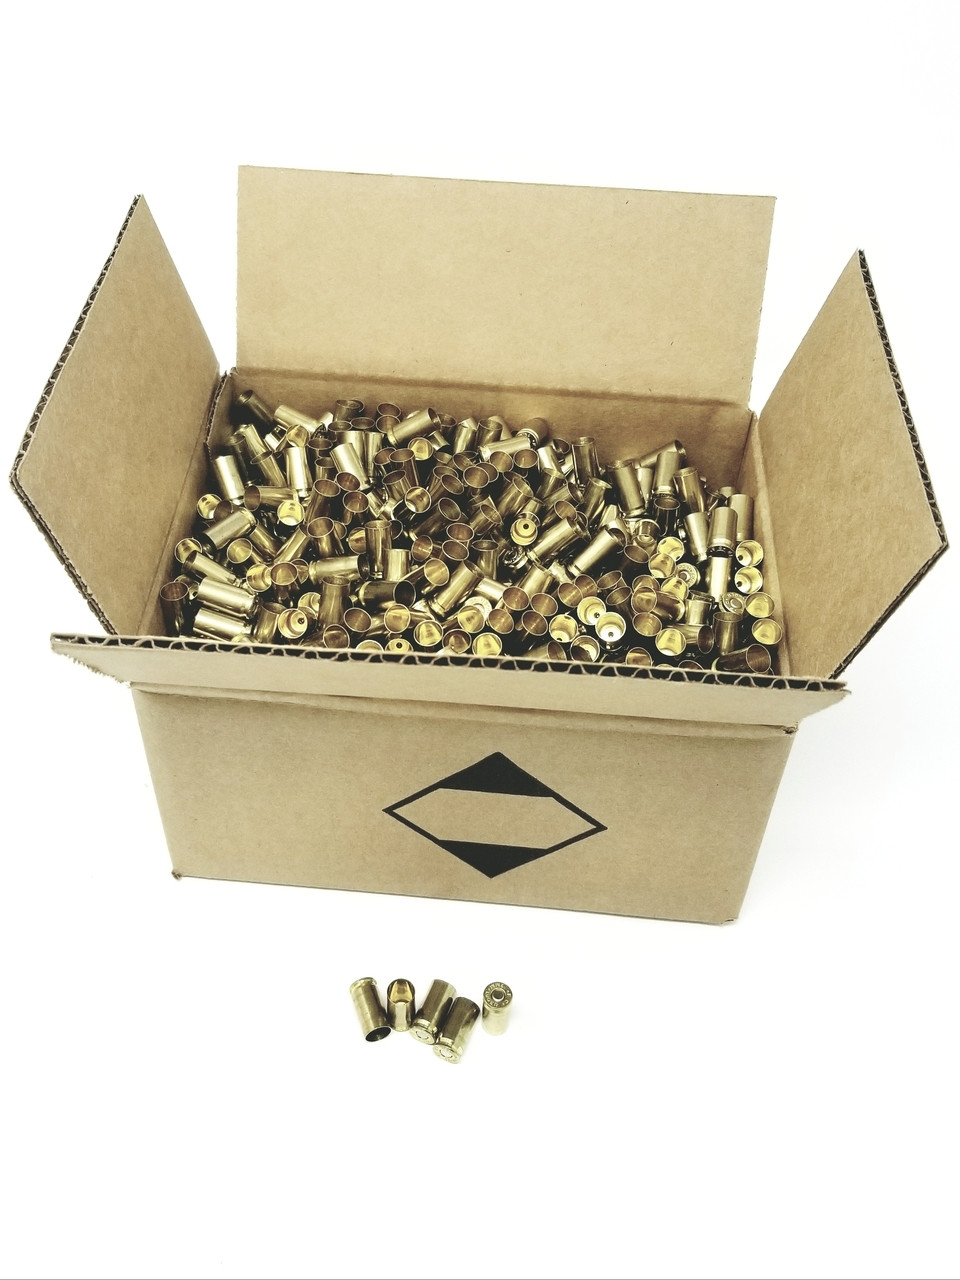 Federal 9mm Primed Reloading Brass Casting 1500 Pieces